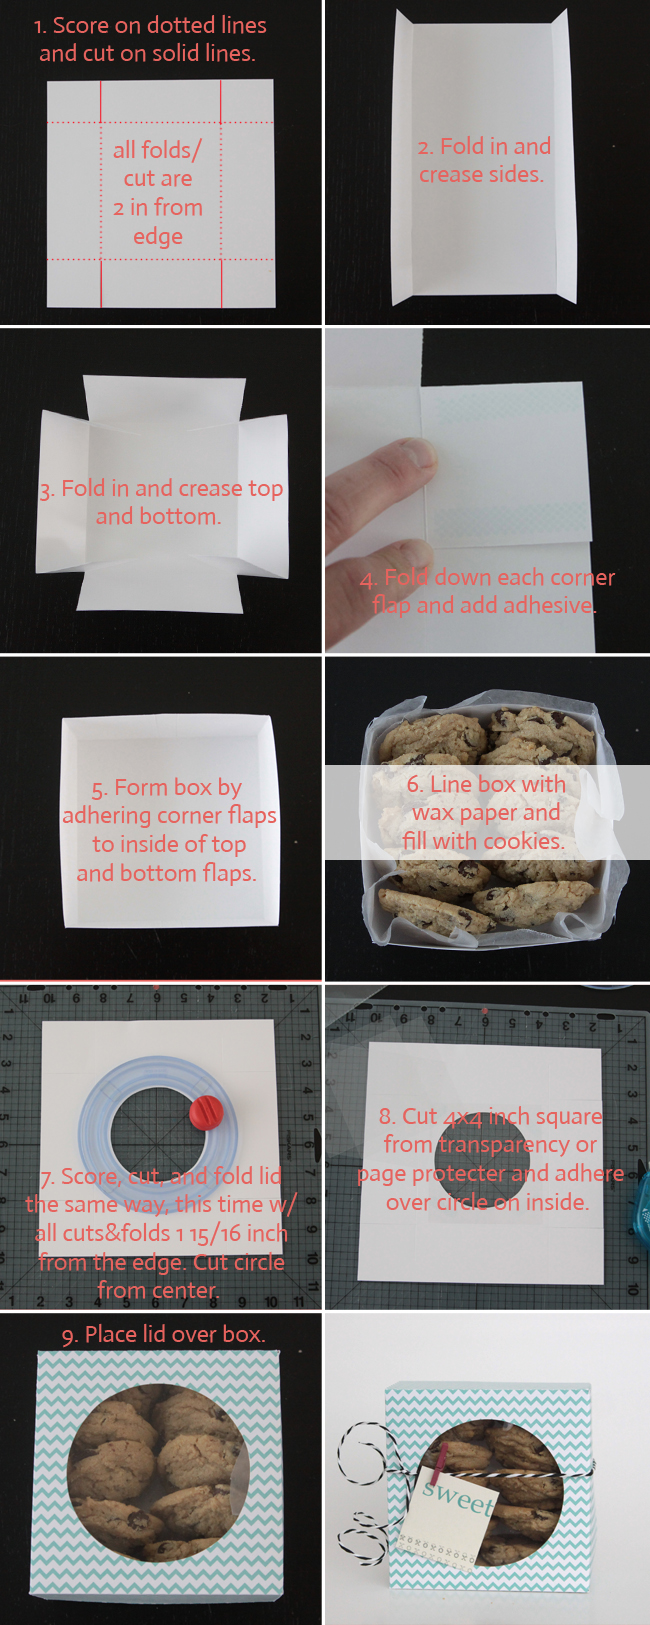 How to make scrapbook easy - Easy Diy Folded Paper Cookie Treat Gift Box Tutorial